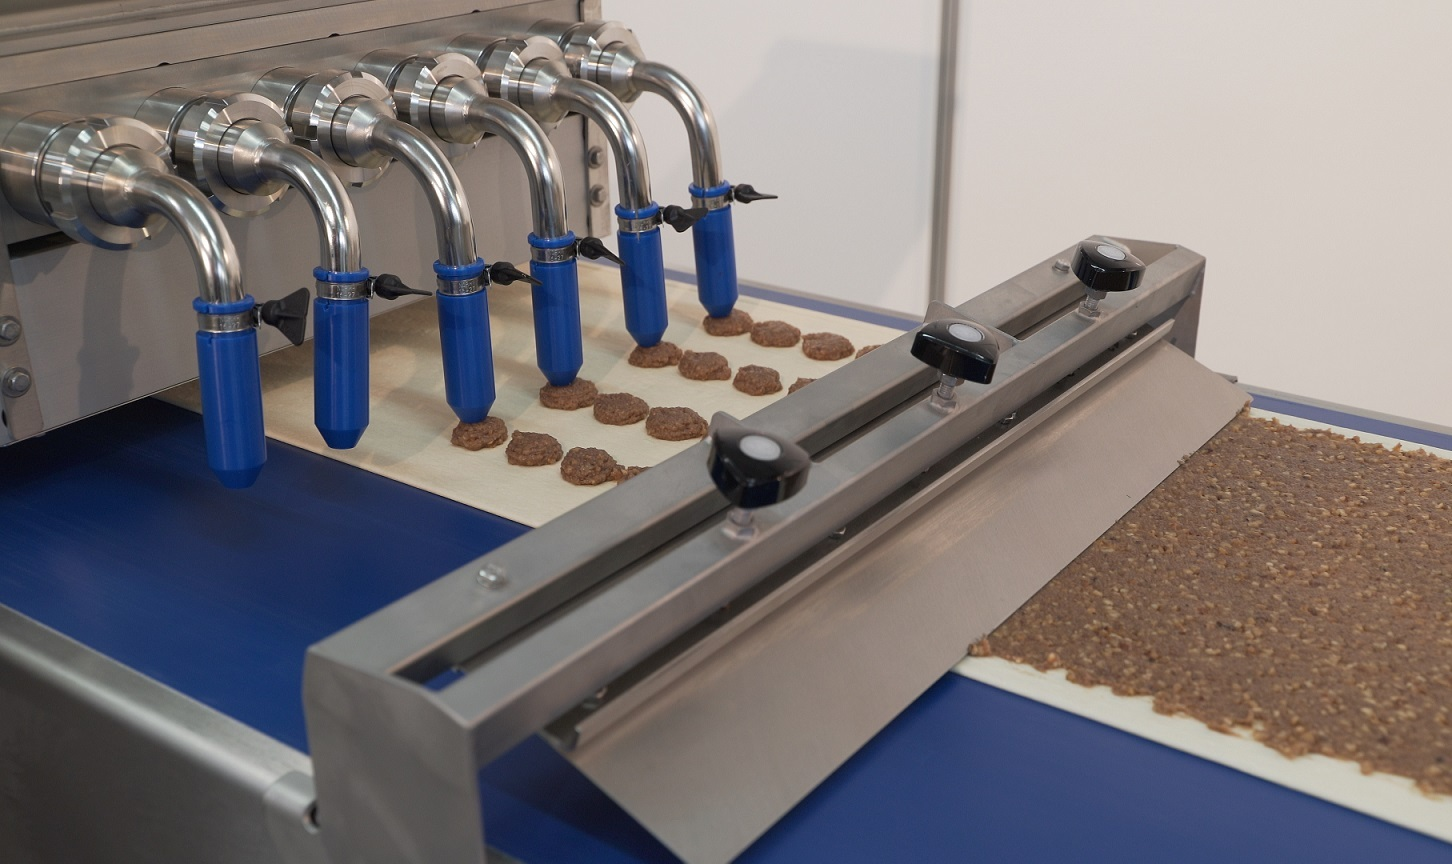 FRITSCH-bakery-machines-CTR-croissant-line-filling-units